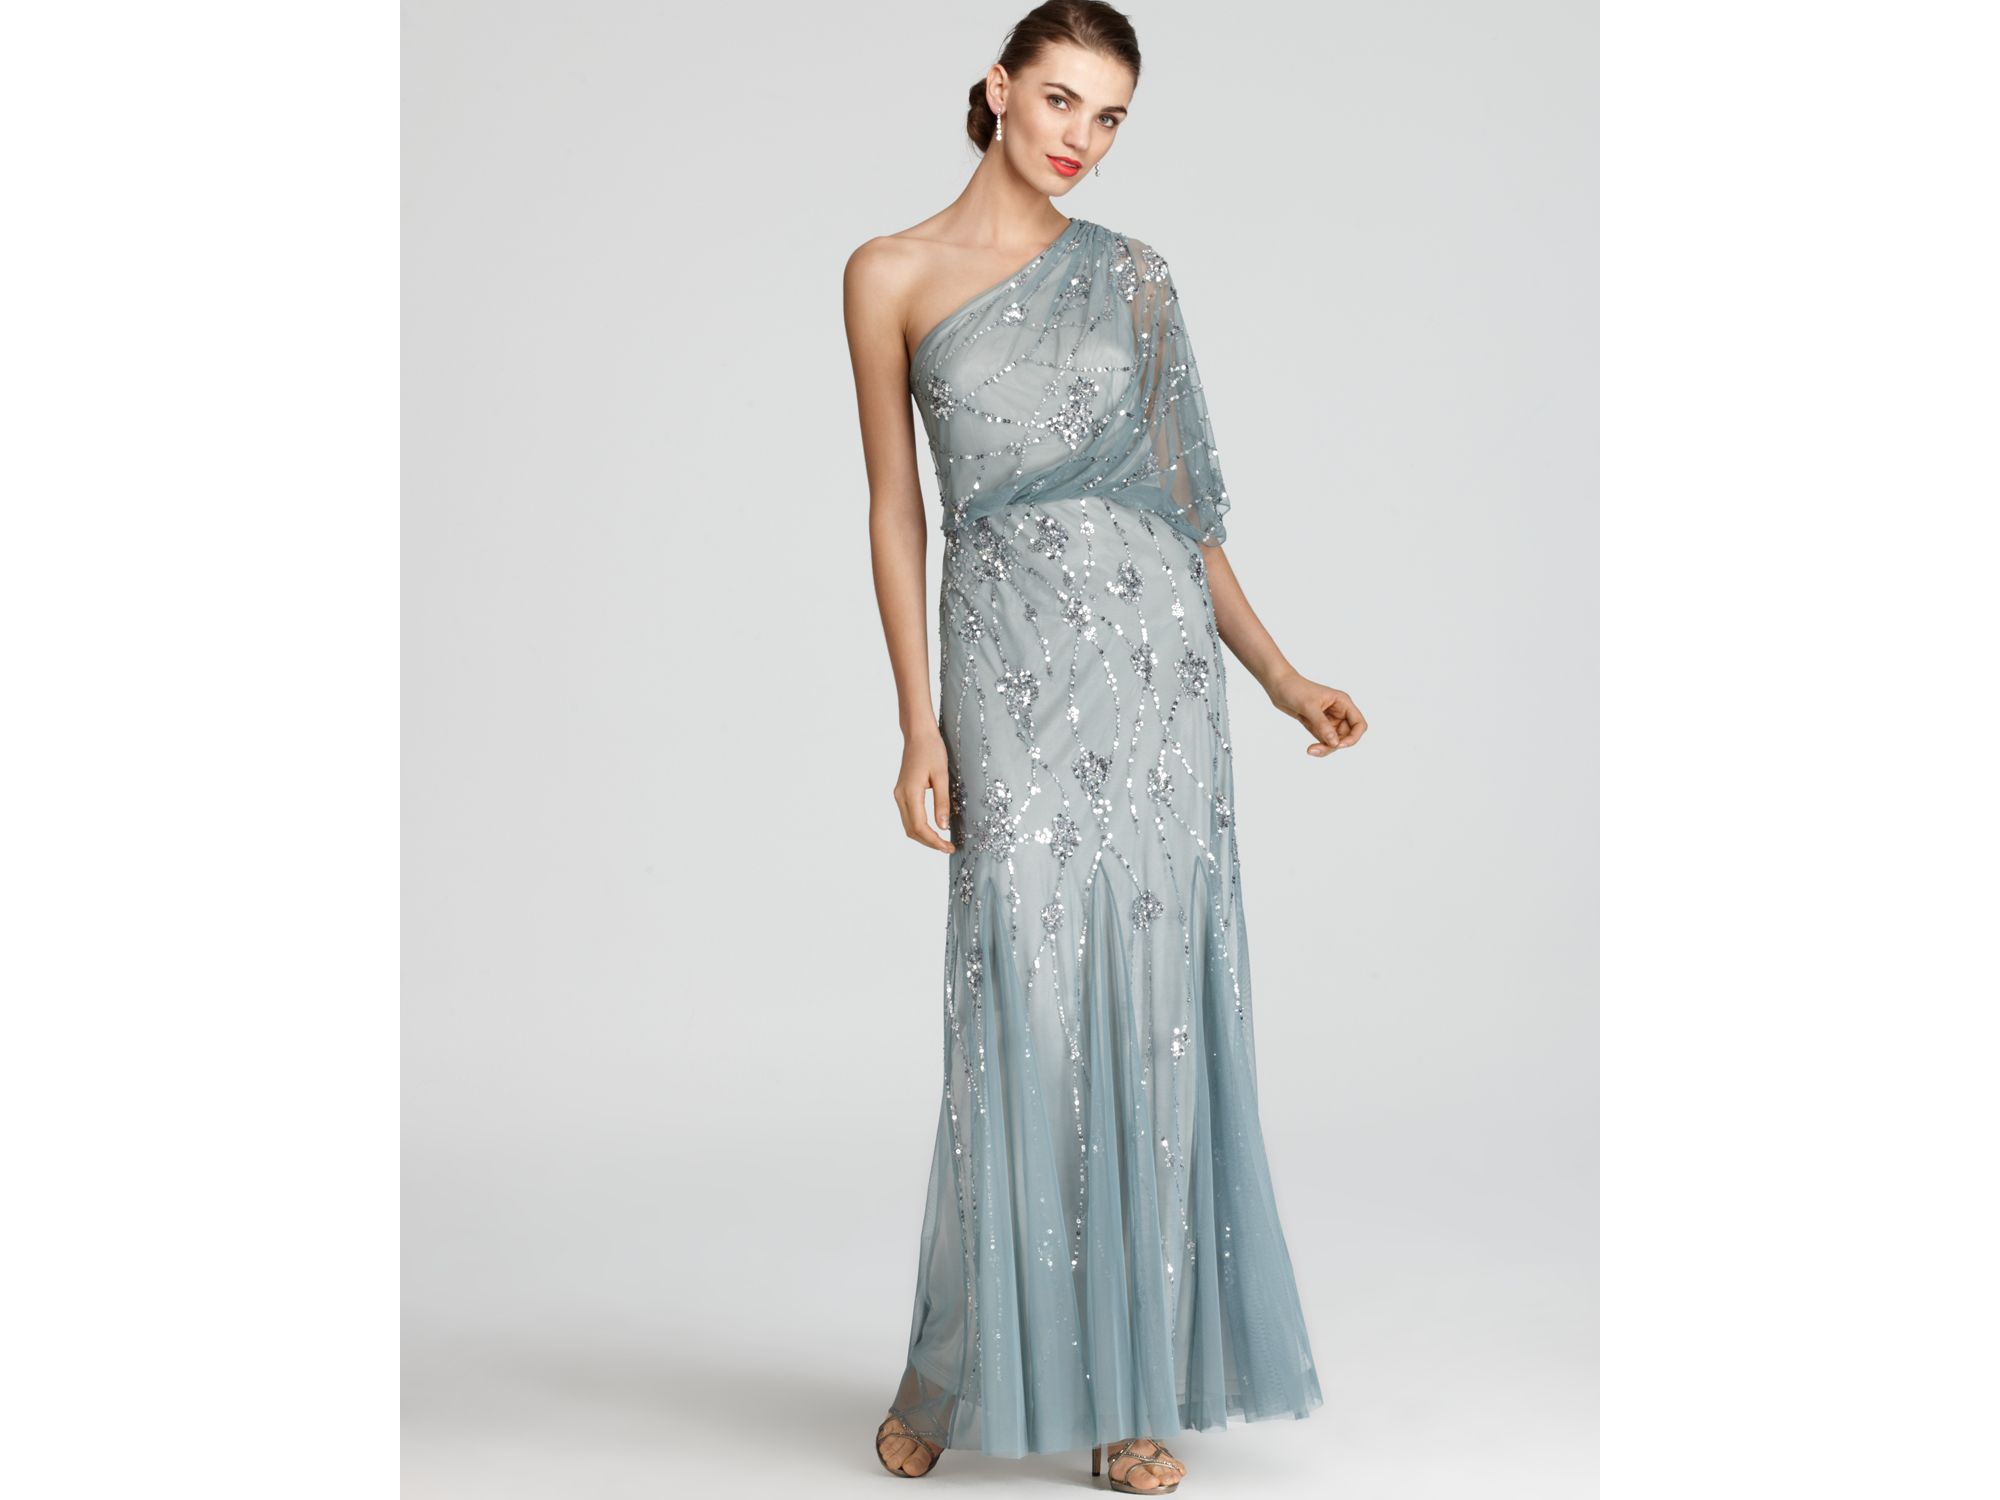 Lyst - Adrianna Papell Gown One Shoulder Sequin in Gray